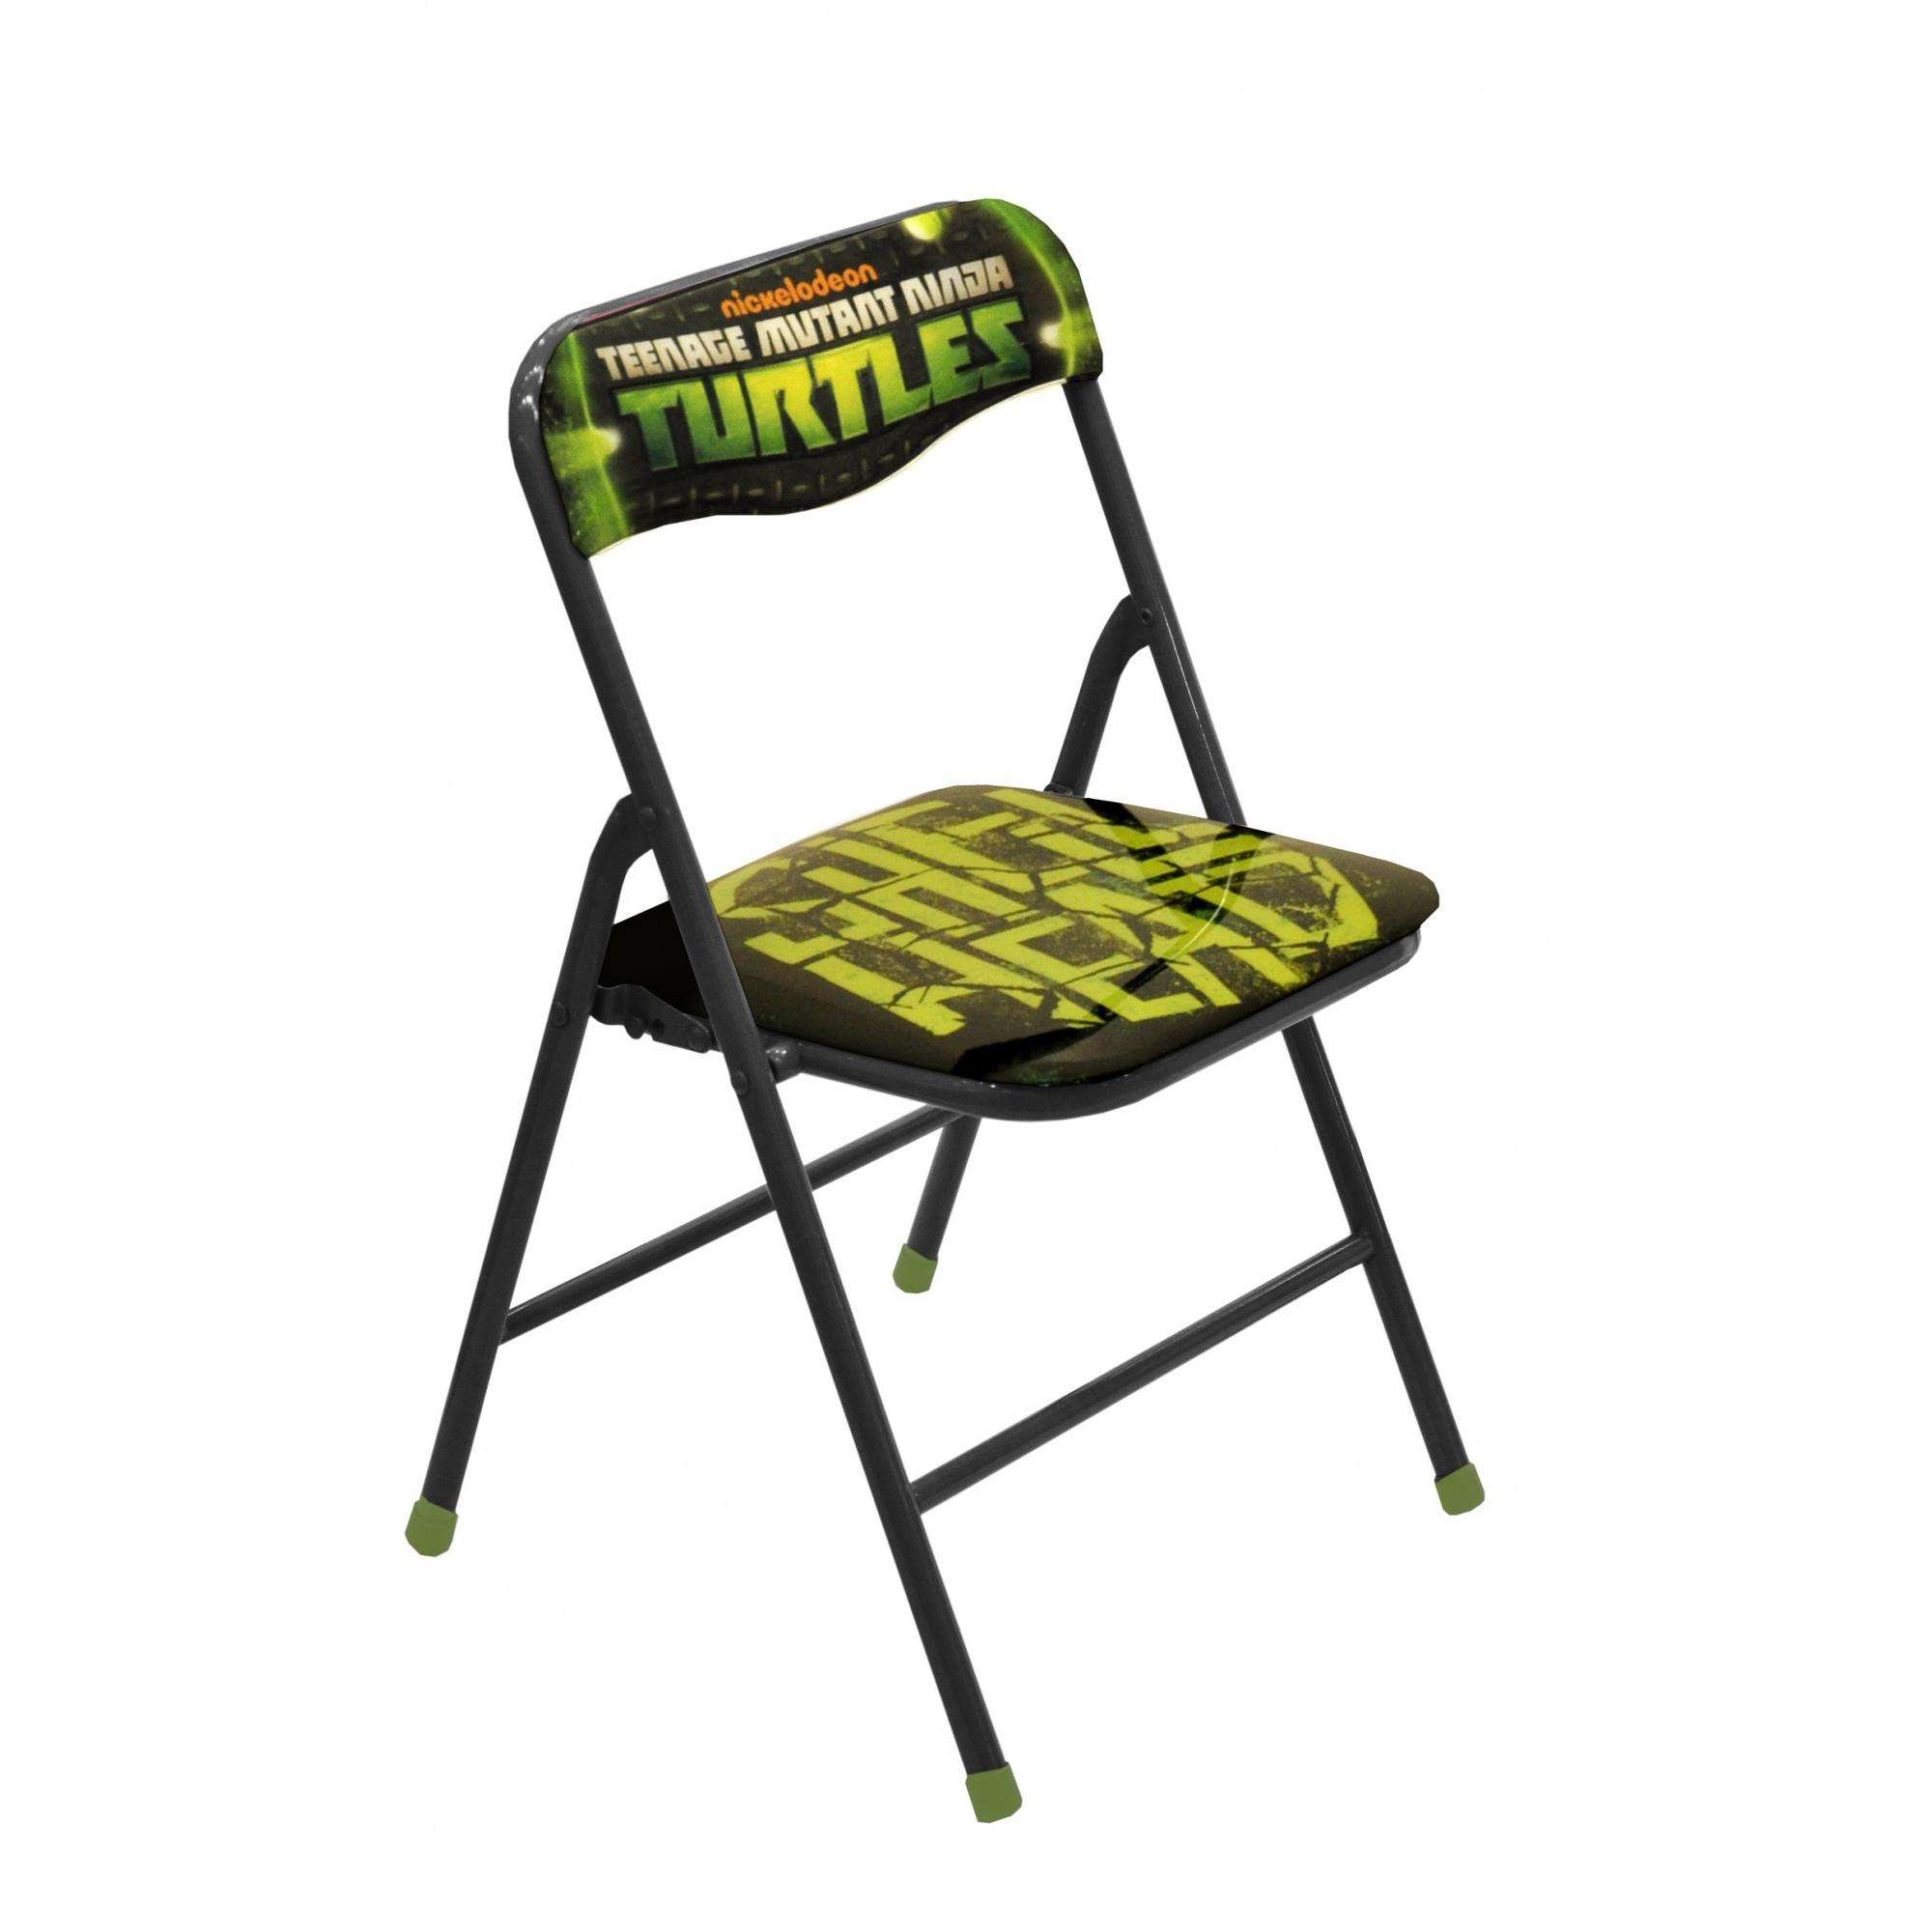 Nickelodeon Ninja Turtles Folding Chair